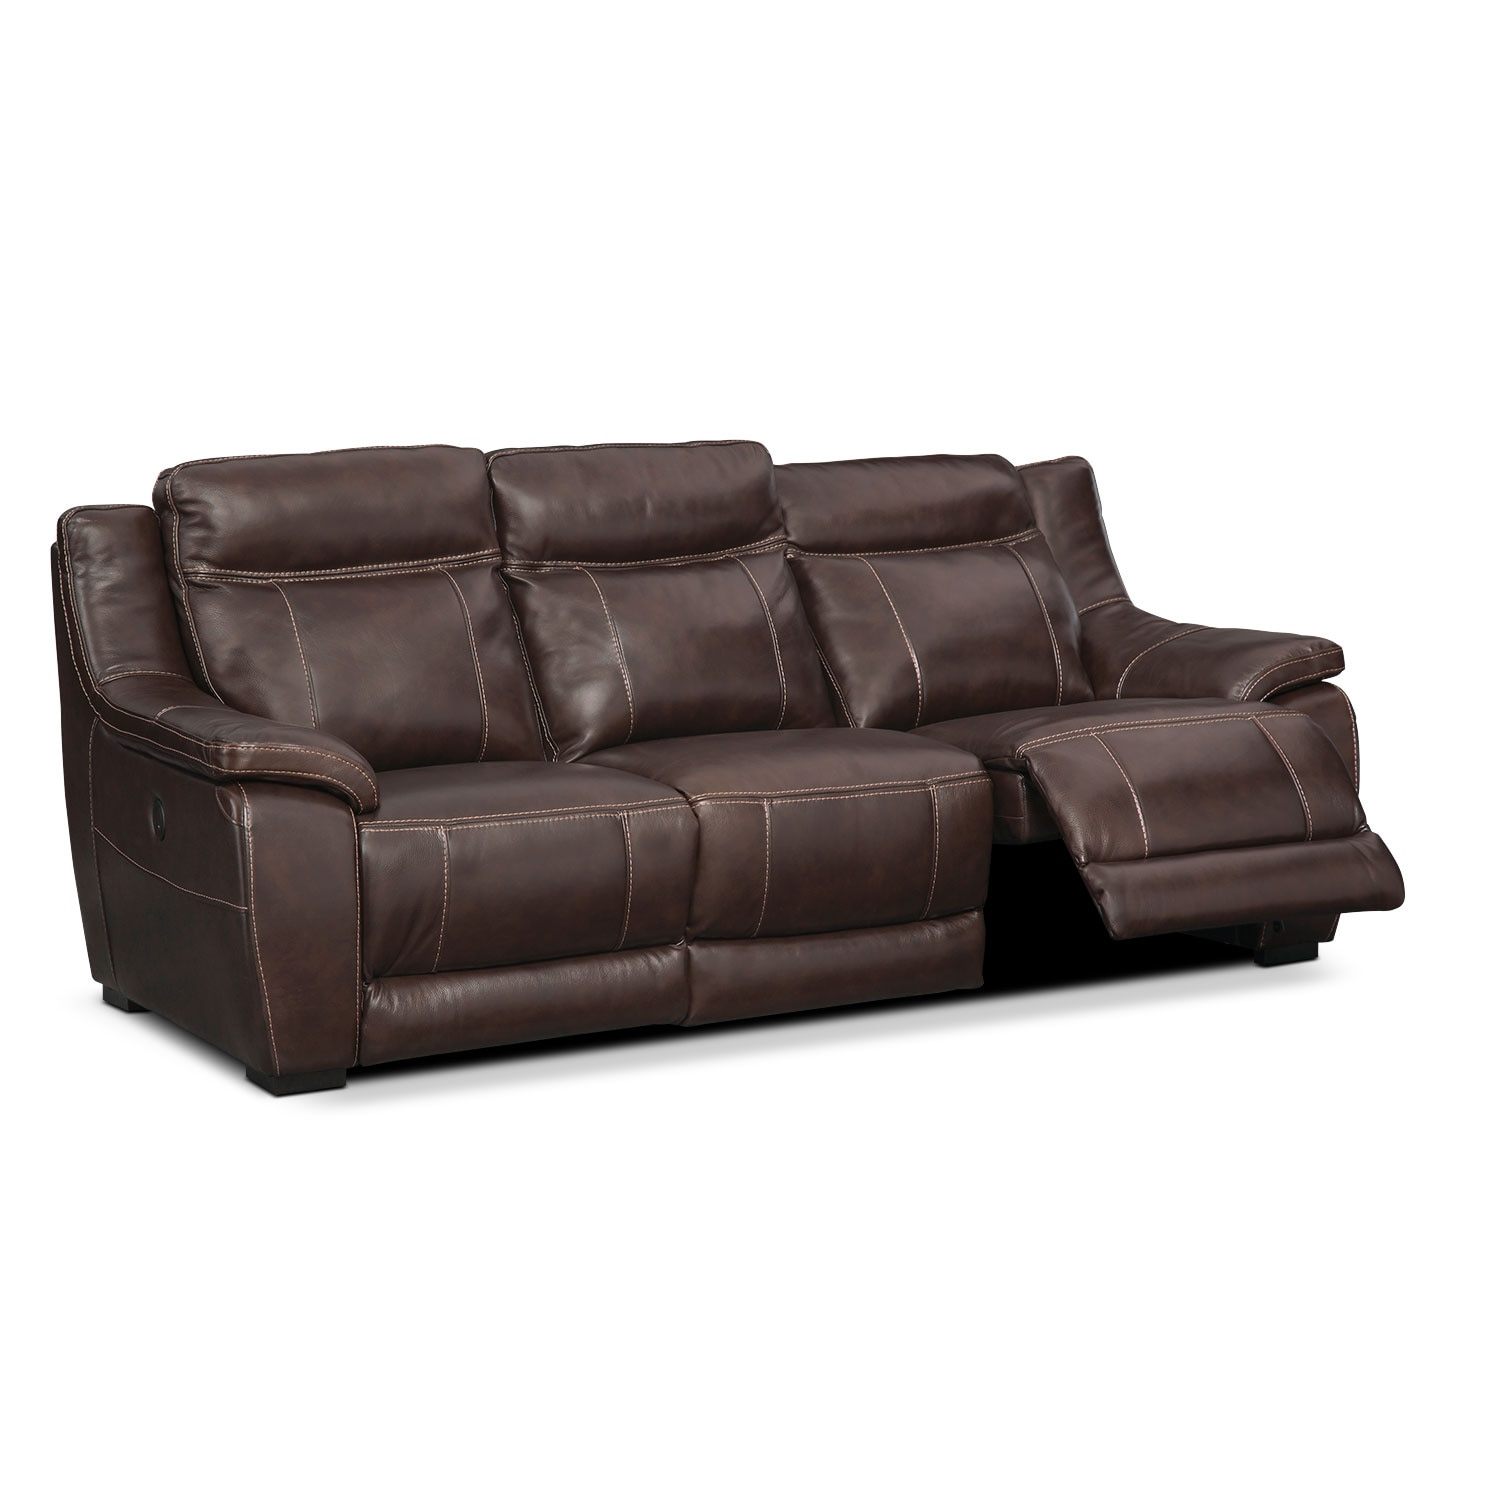 Lido Power Reclining Sofa Brown